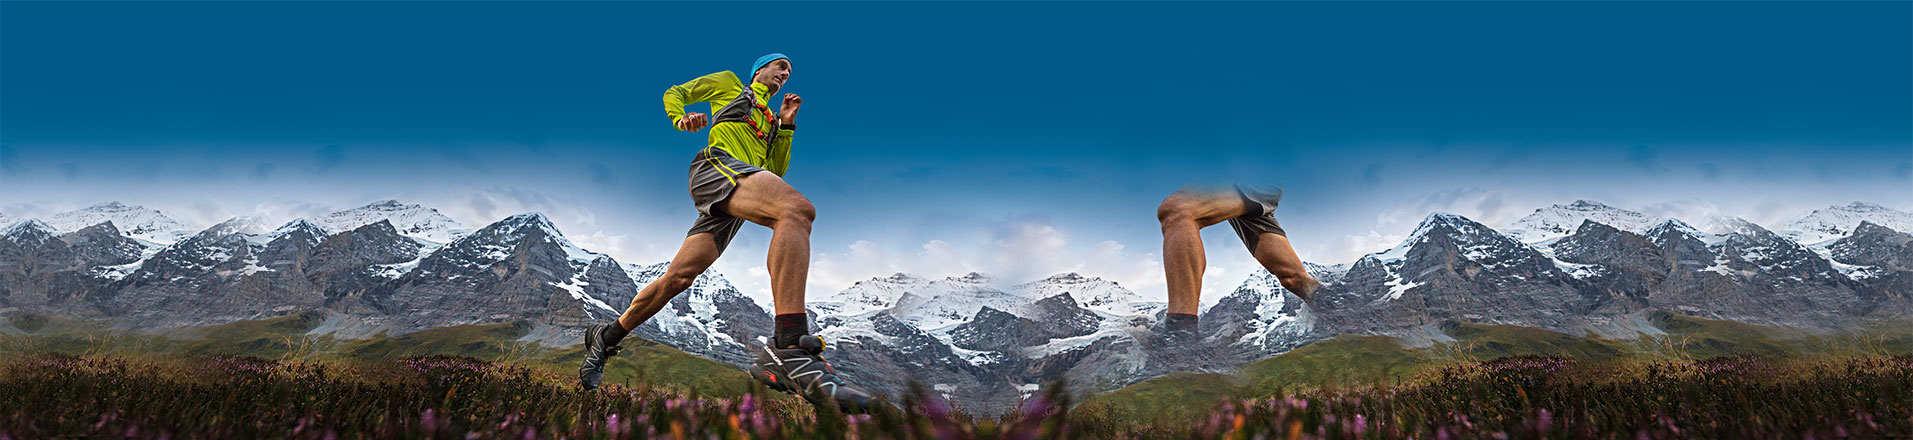 Faszination Trailrunning | Slider-Hintergrundbild